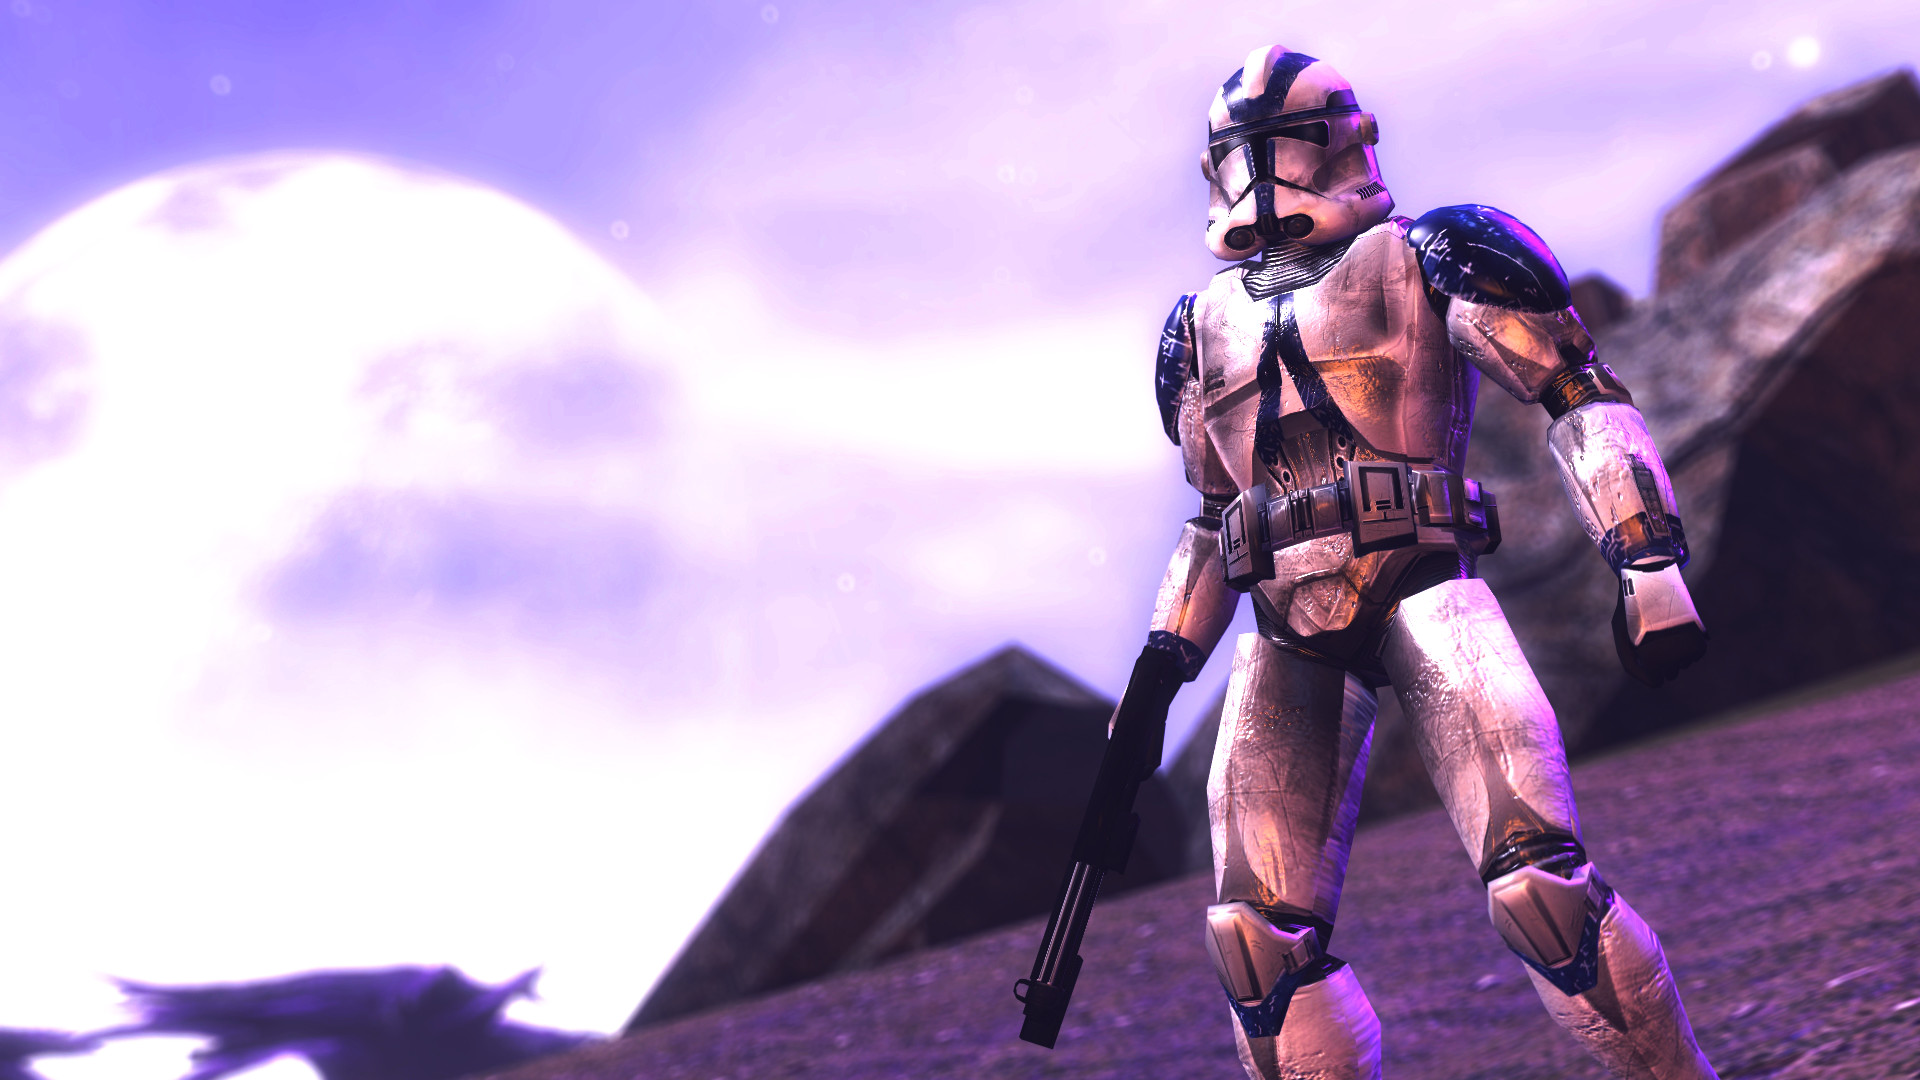 … 501st Clone Trooper standing about by Shacobi